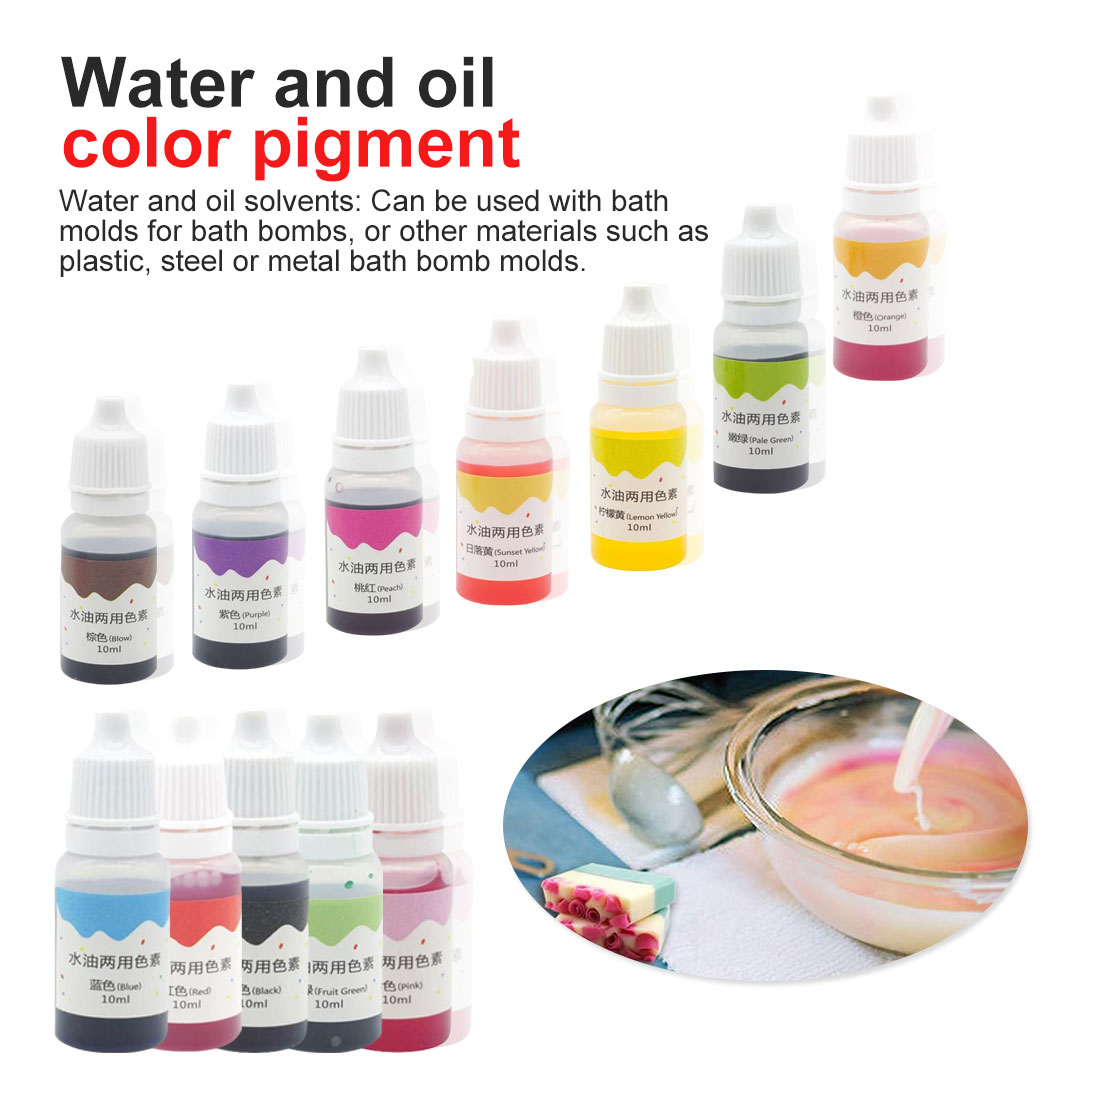 10ml Handmade Soap Dye Pigments Safe and Non-toxic Base Color Liquid Pigment DIY Manual Soap Colorant Tool Kit